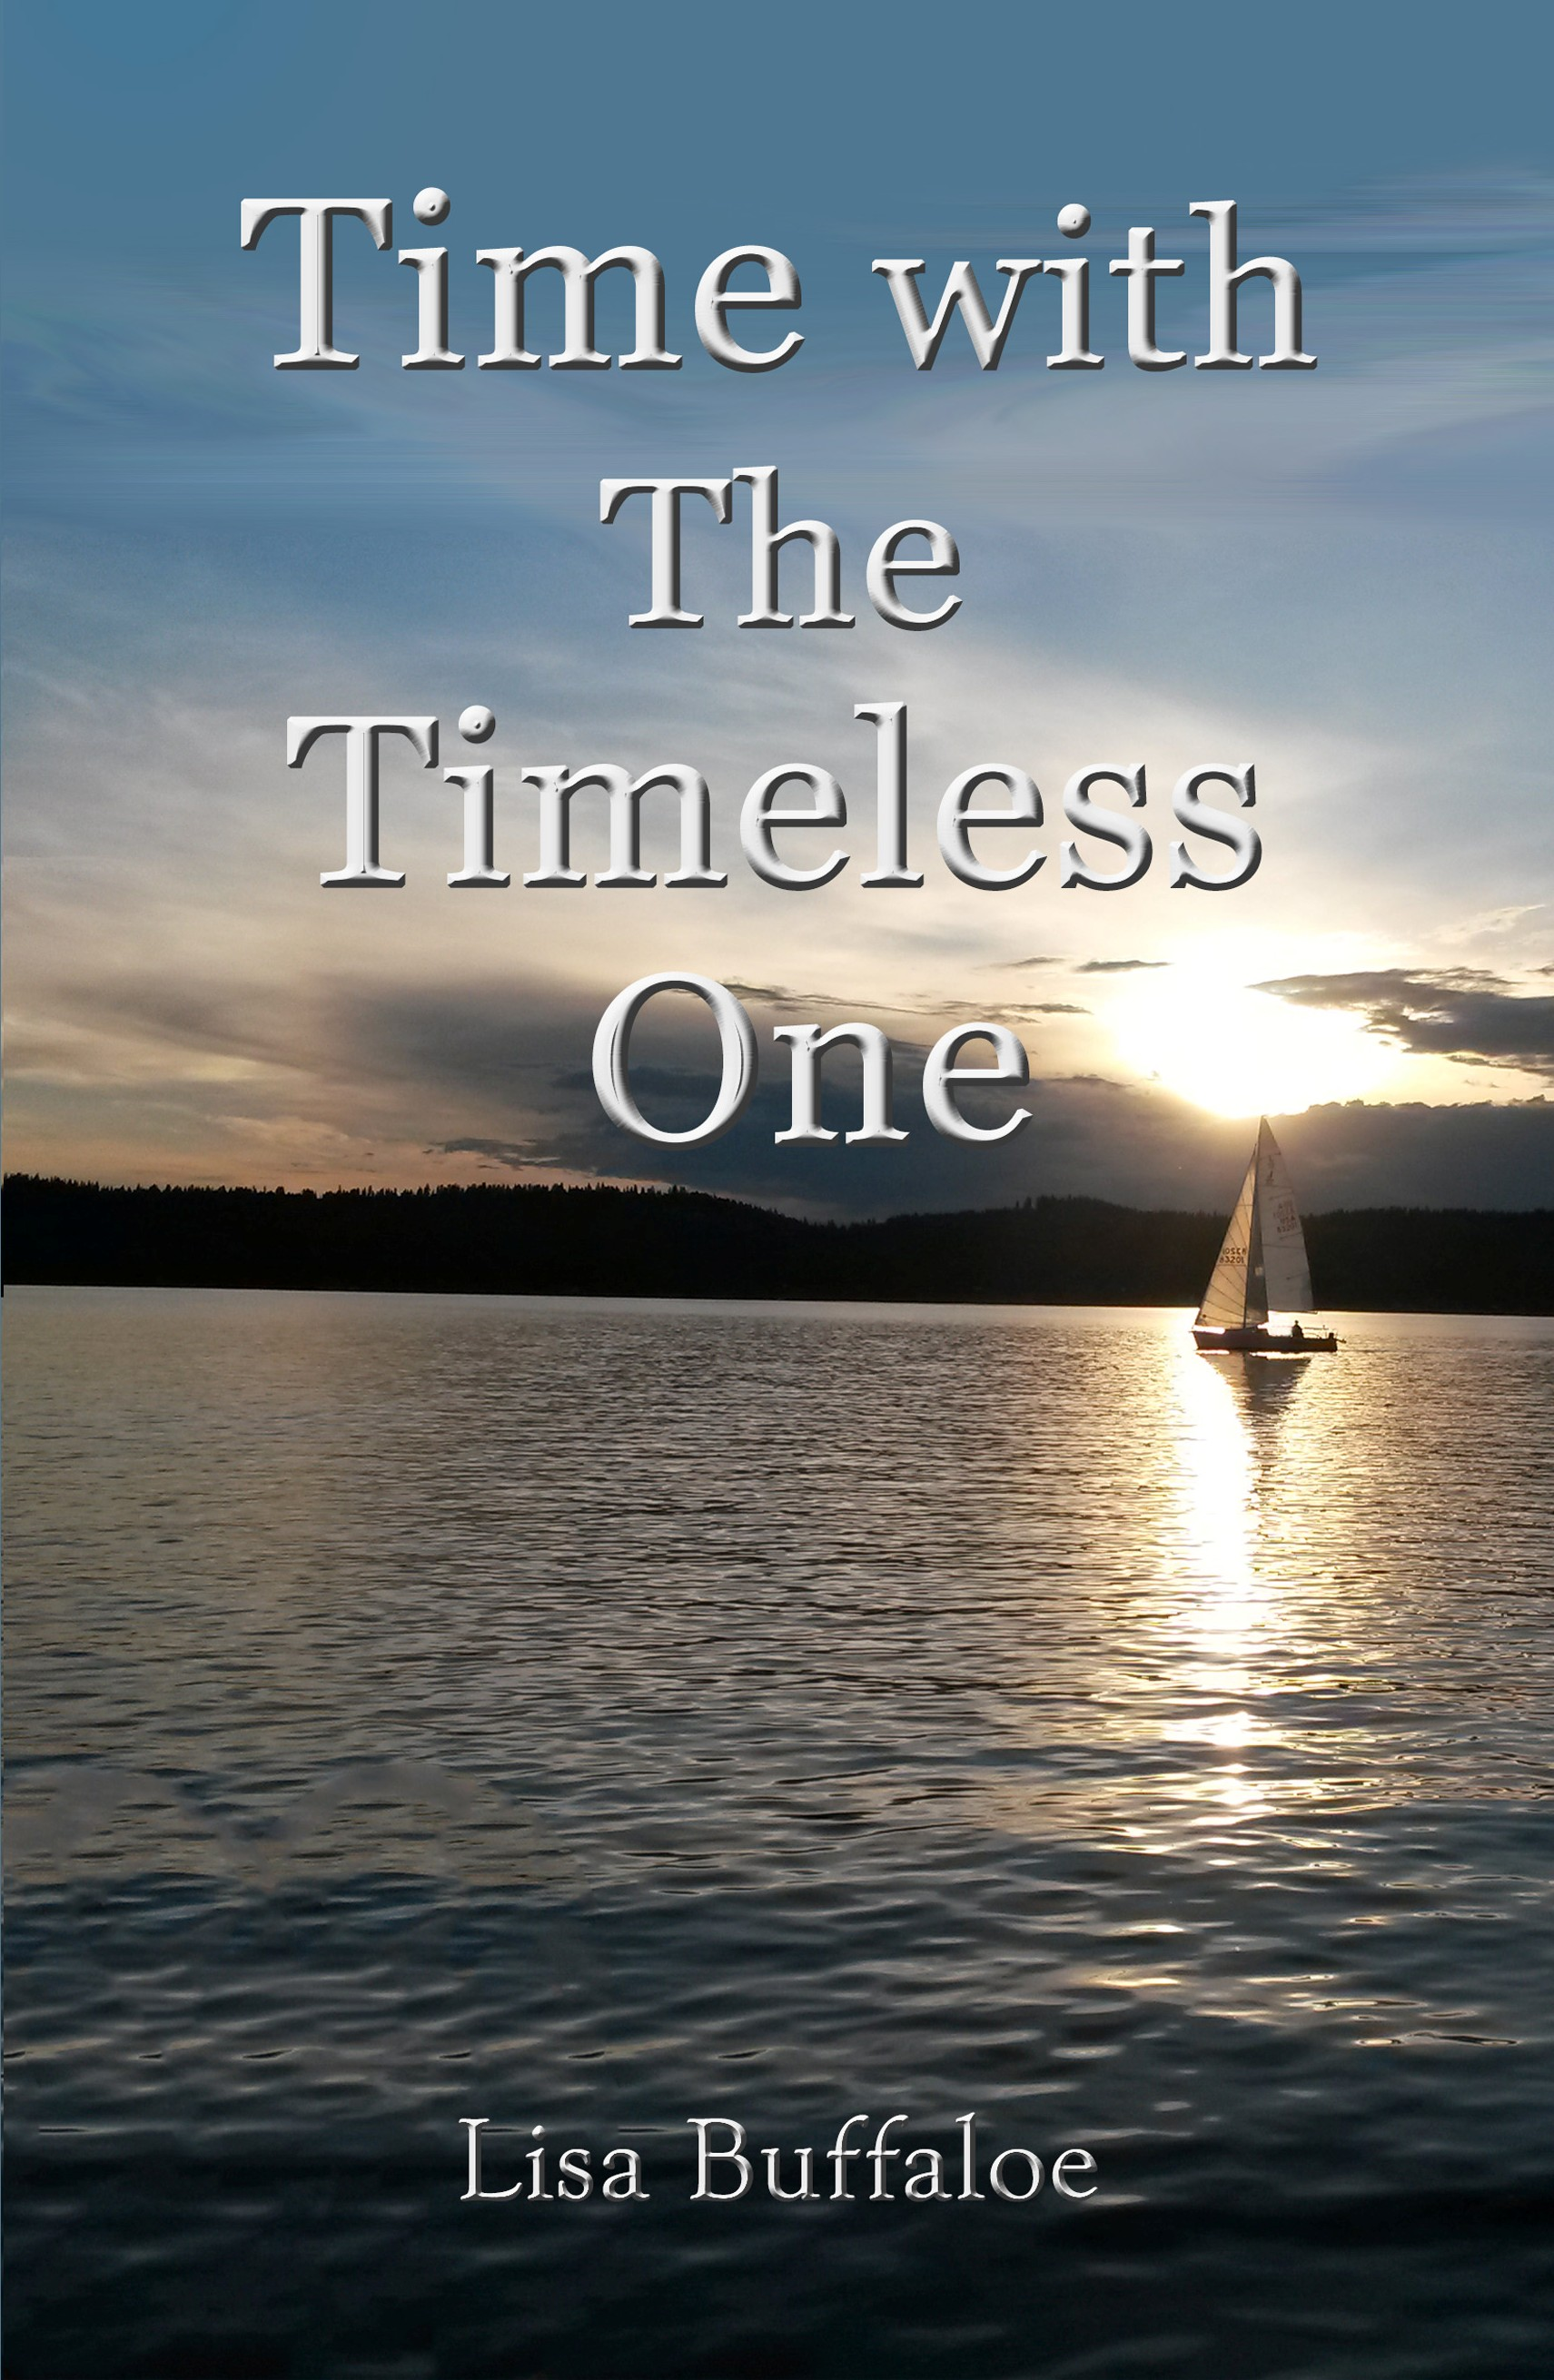 Time with The Timeless One by Lisa Buffaloe